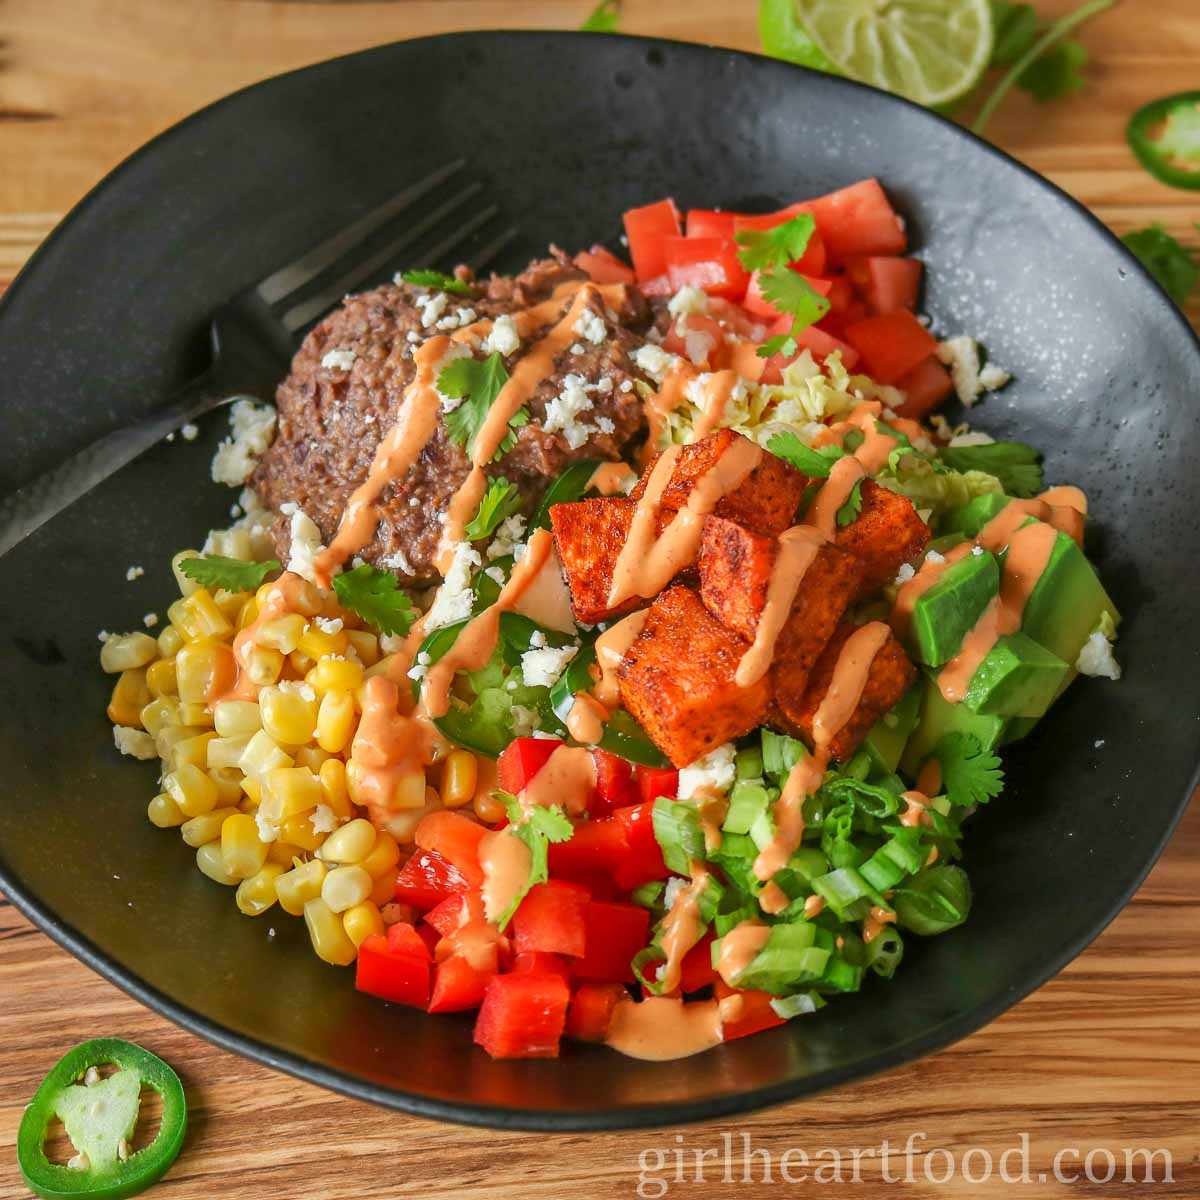 Refried Bean and vegetable burrito bowl drizzled with chipotle yogurt sauce.